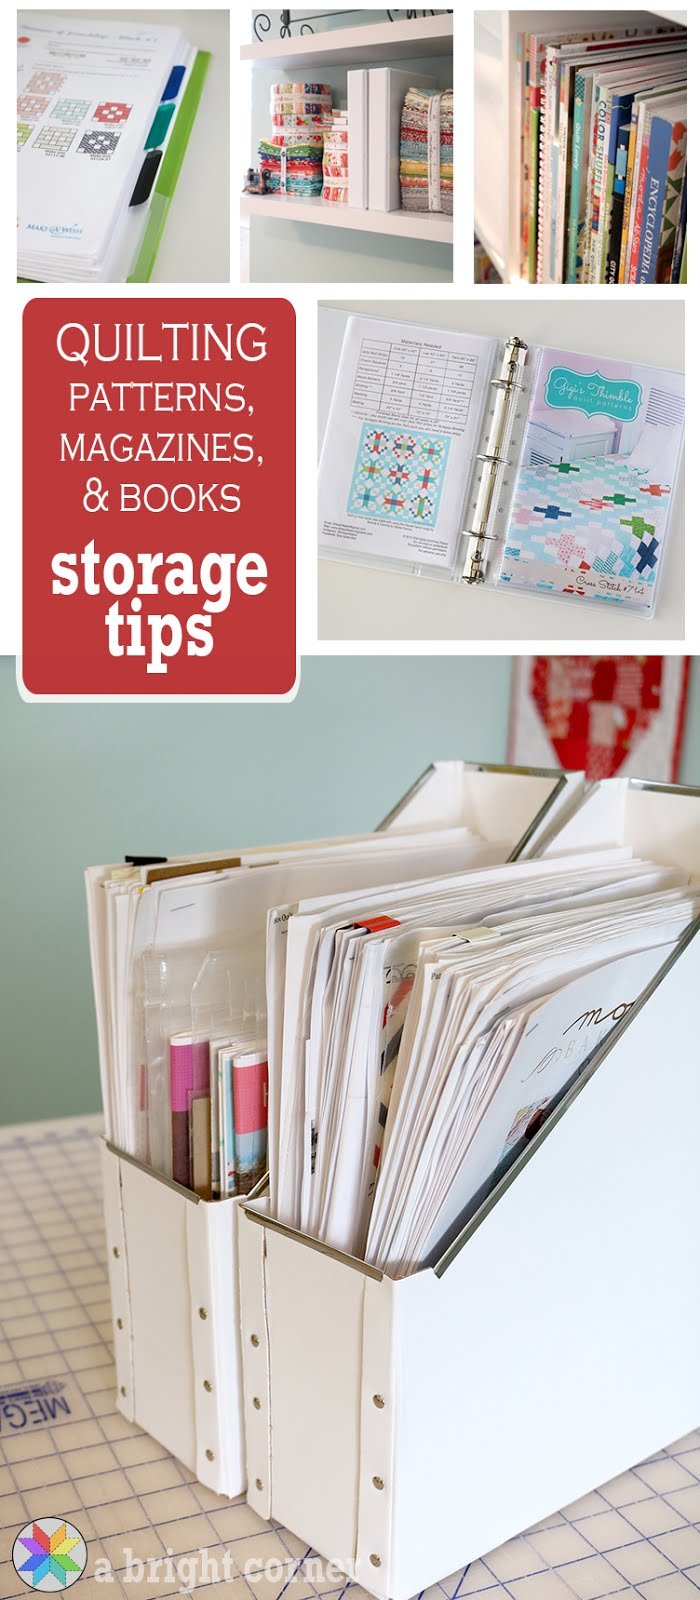 A Bright Corner: Sew Organized Part 2: Tips for Storing ...